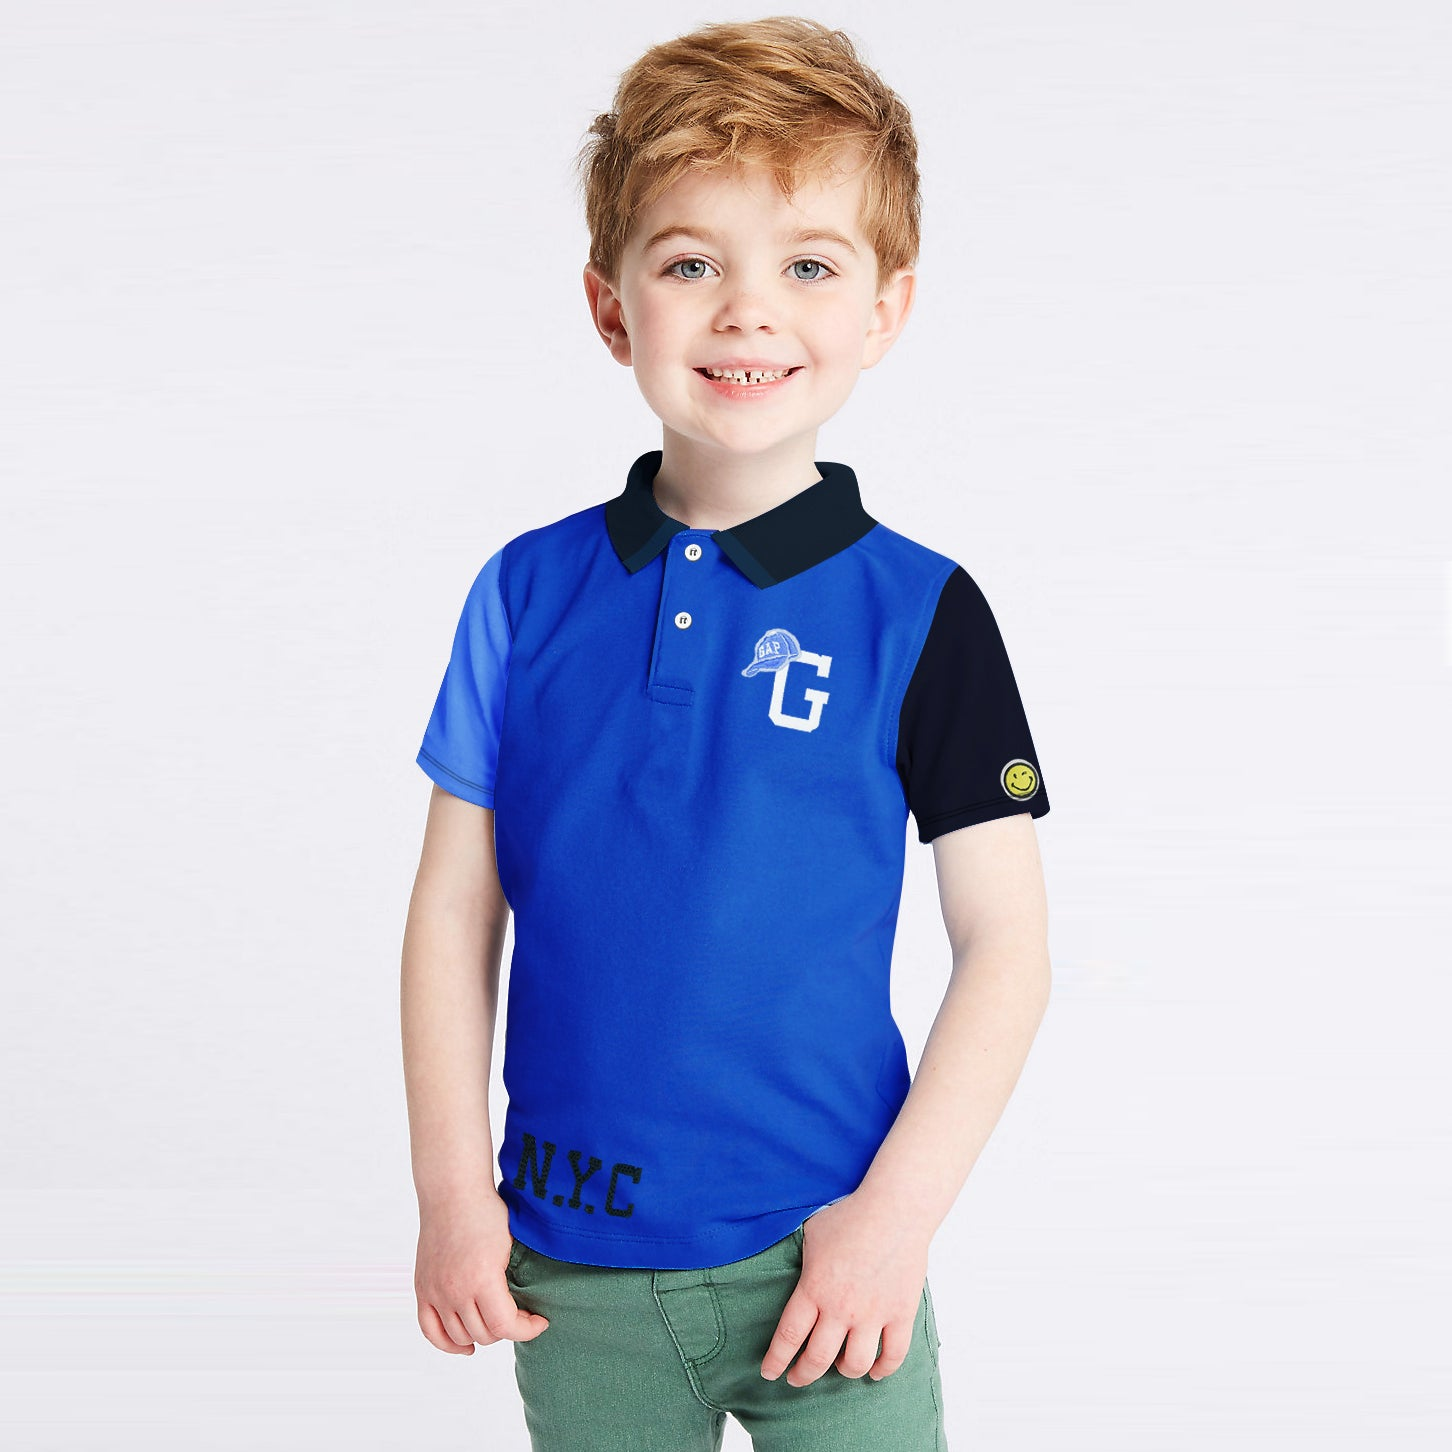 brandsego - GAP Half Sleeve P.Q Polo Shirt For Kids-BE8633